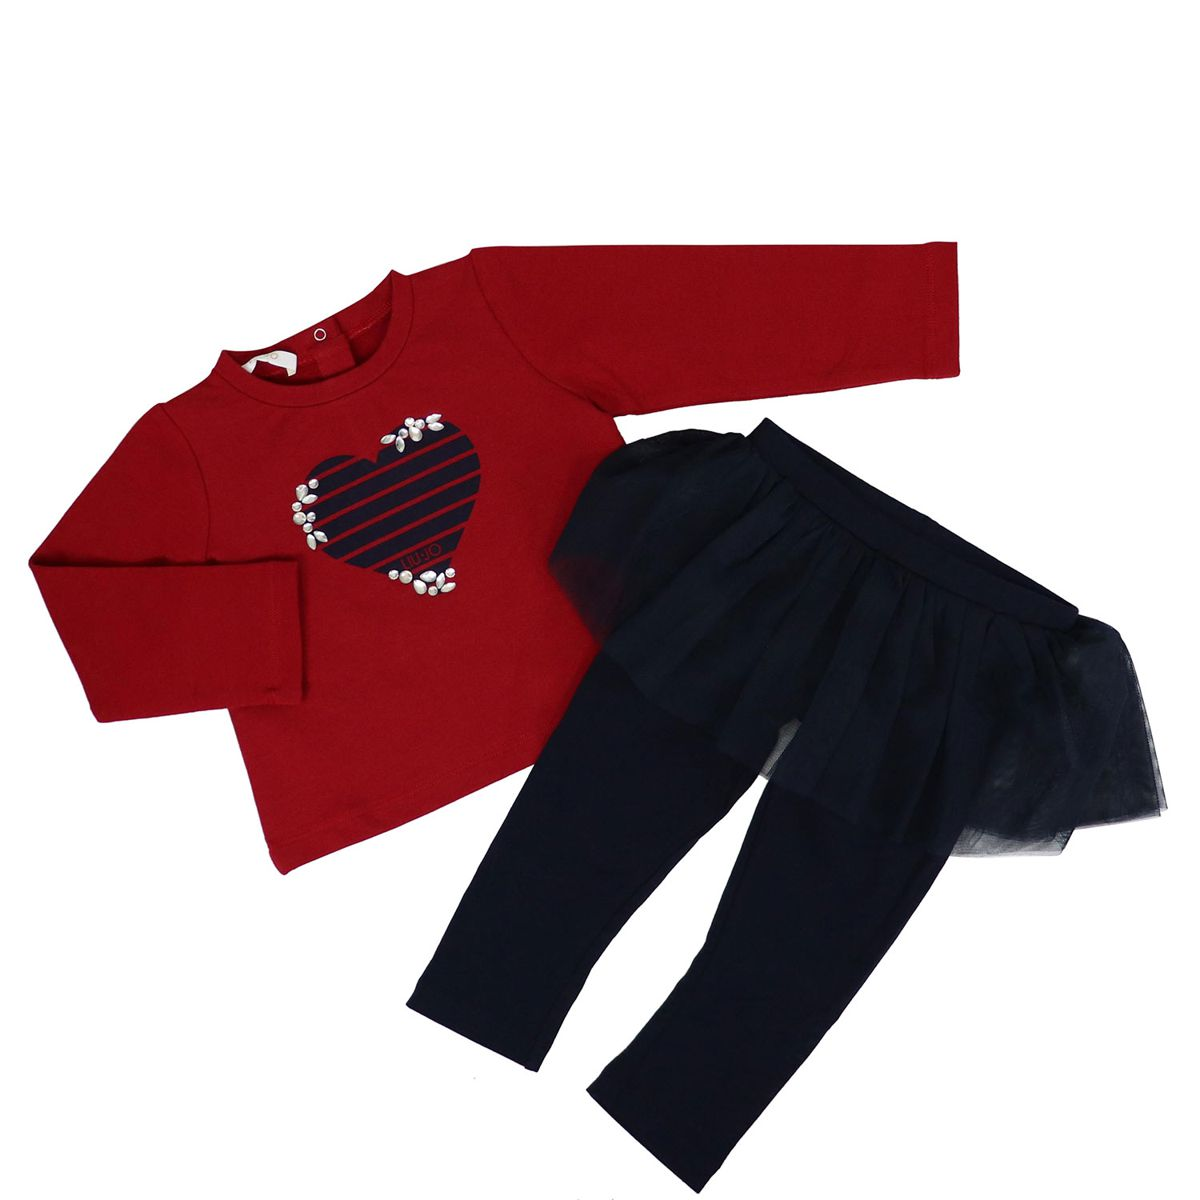 Cotton outfit with print and flounces Red blue Liu Jo